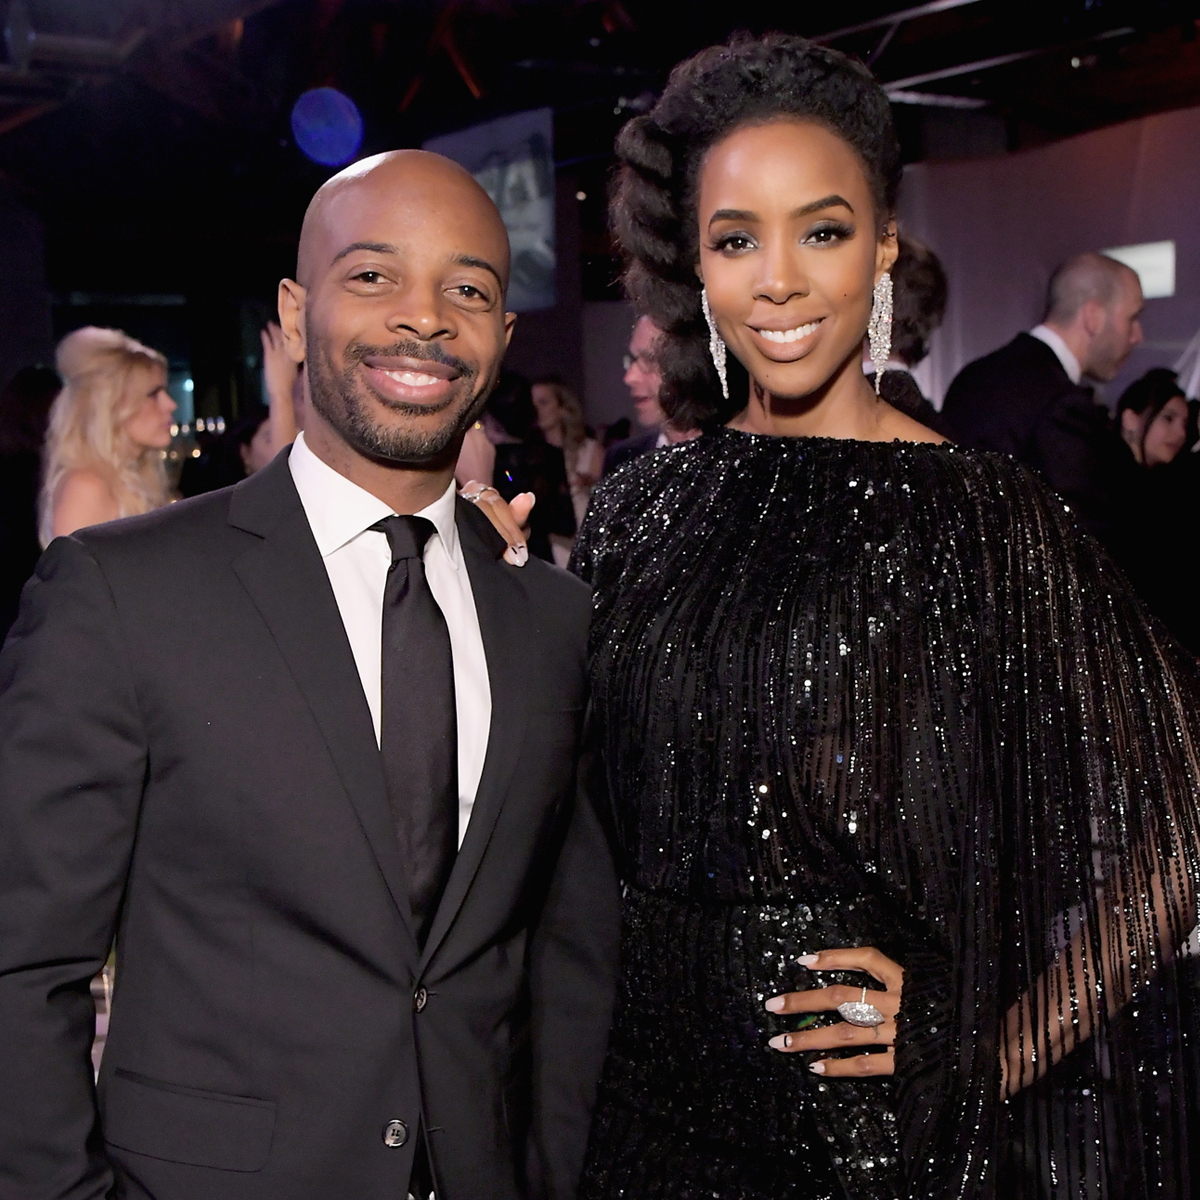 Kelly Rowland Is Pregnant, Expecting Baby No. 2 With Husband Tim Weatherspoon